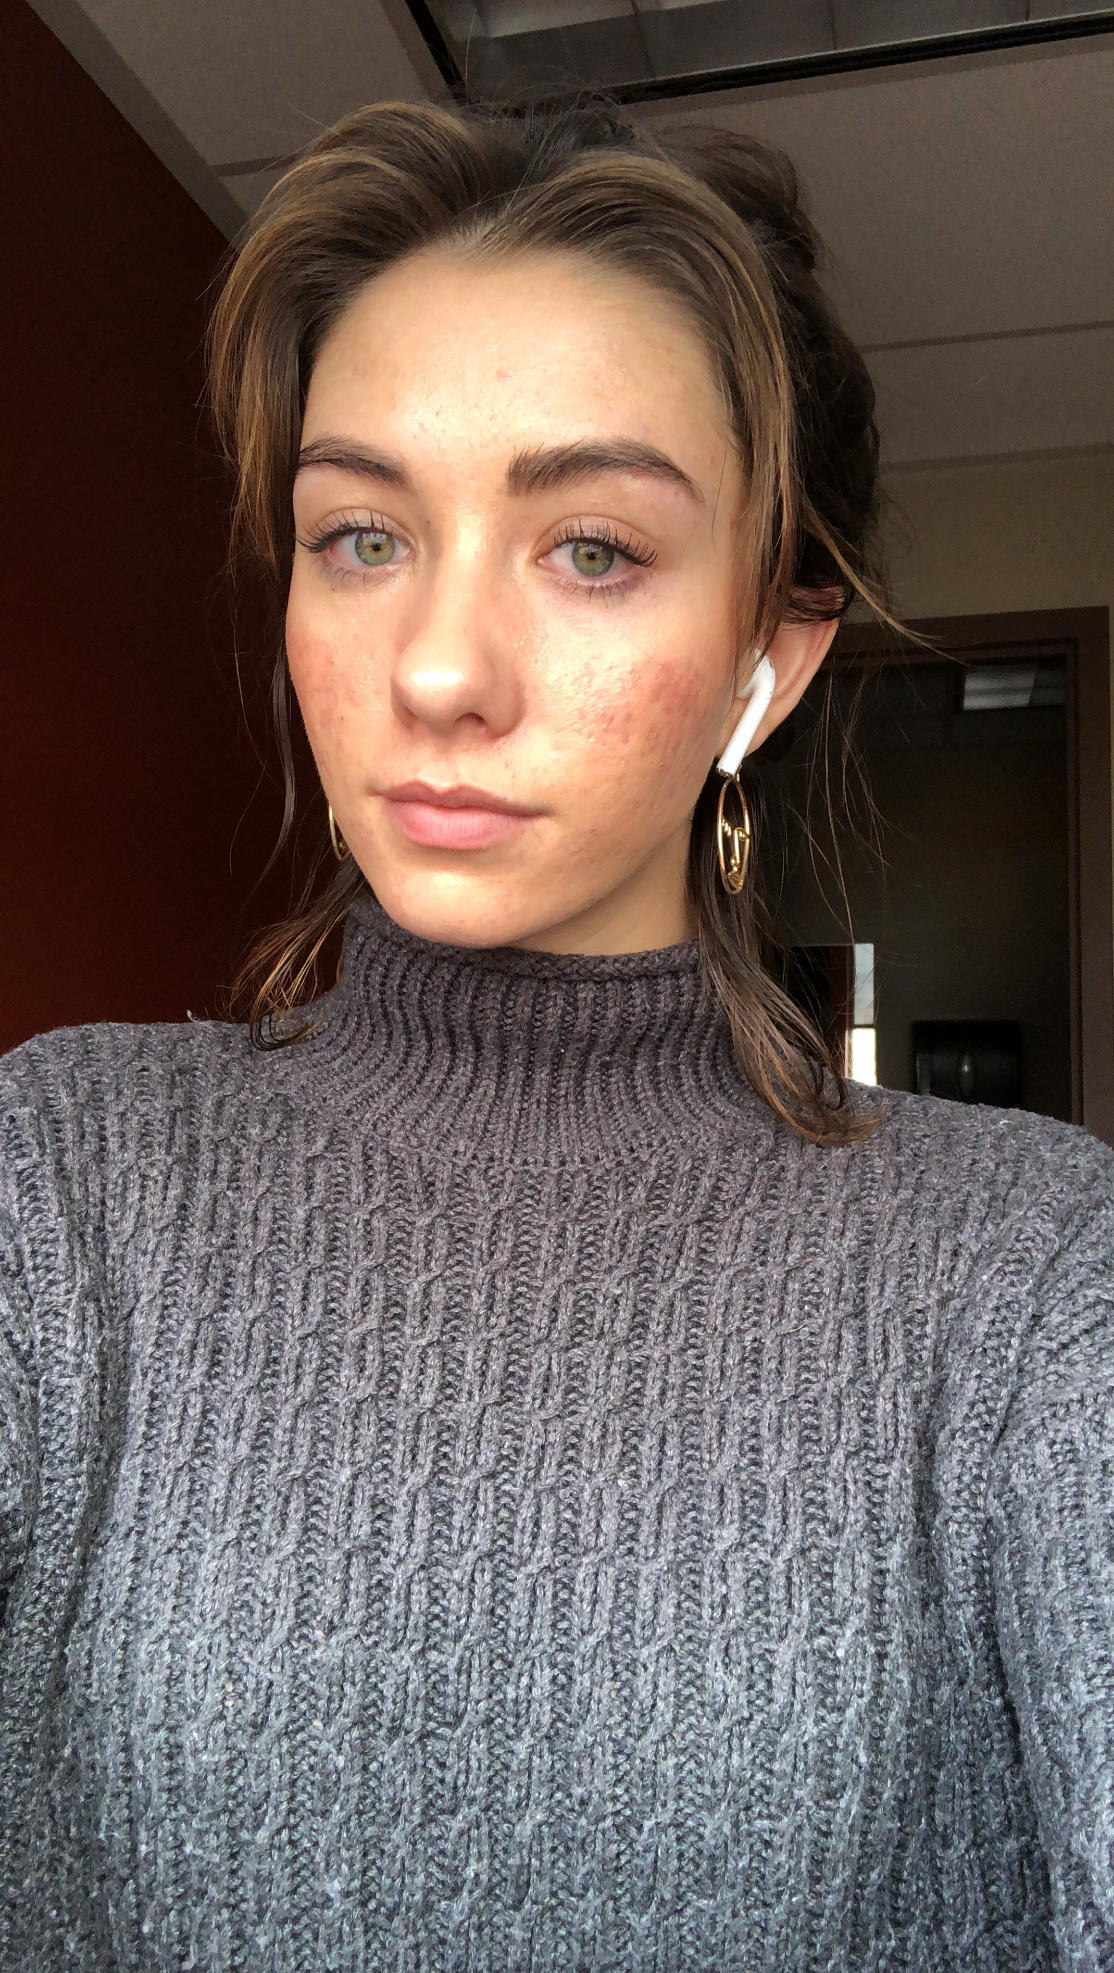 My skin just one month ago featuring the air pods I definitely didn't realize were there. Yay, skin is so much better! Here, I finally felt confident again.